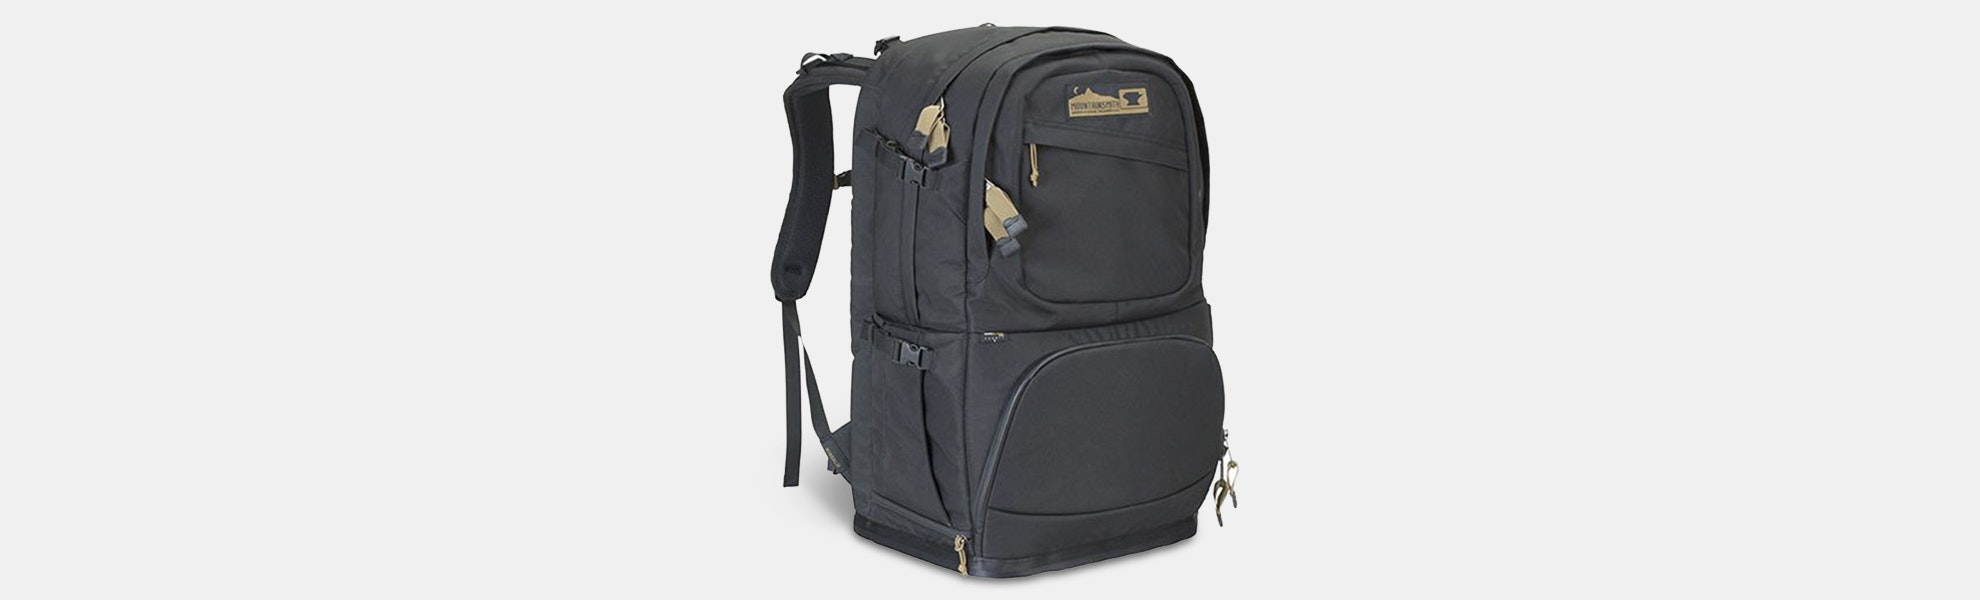 Mountainsmith Borealis 35L Photography Backpack